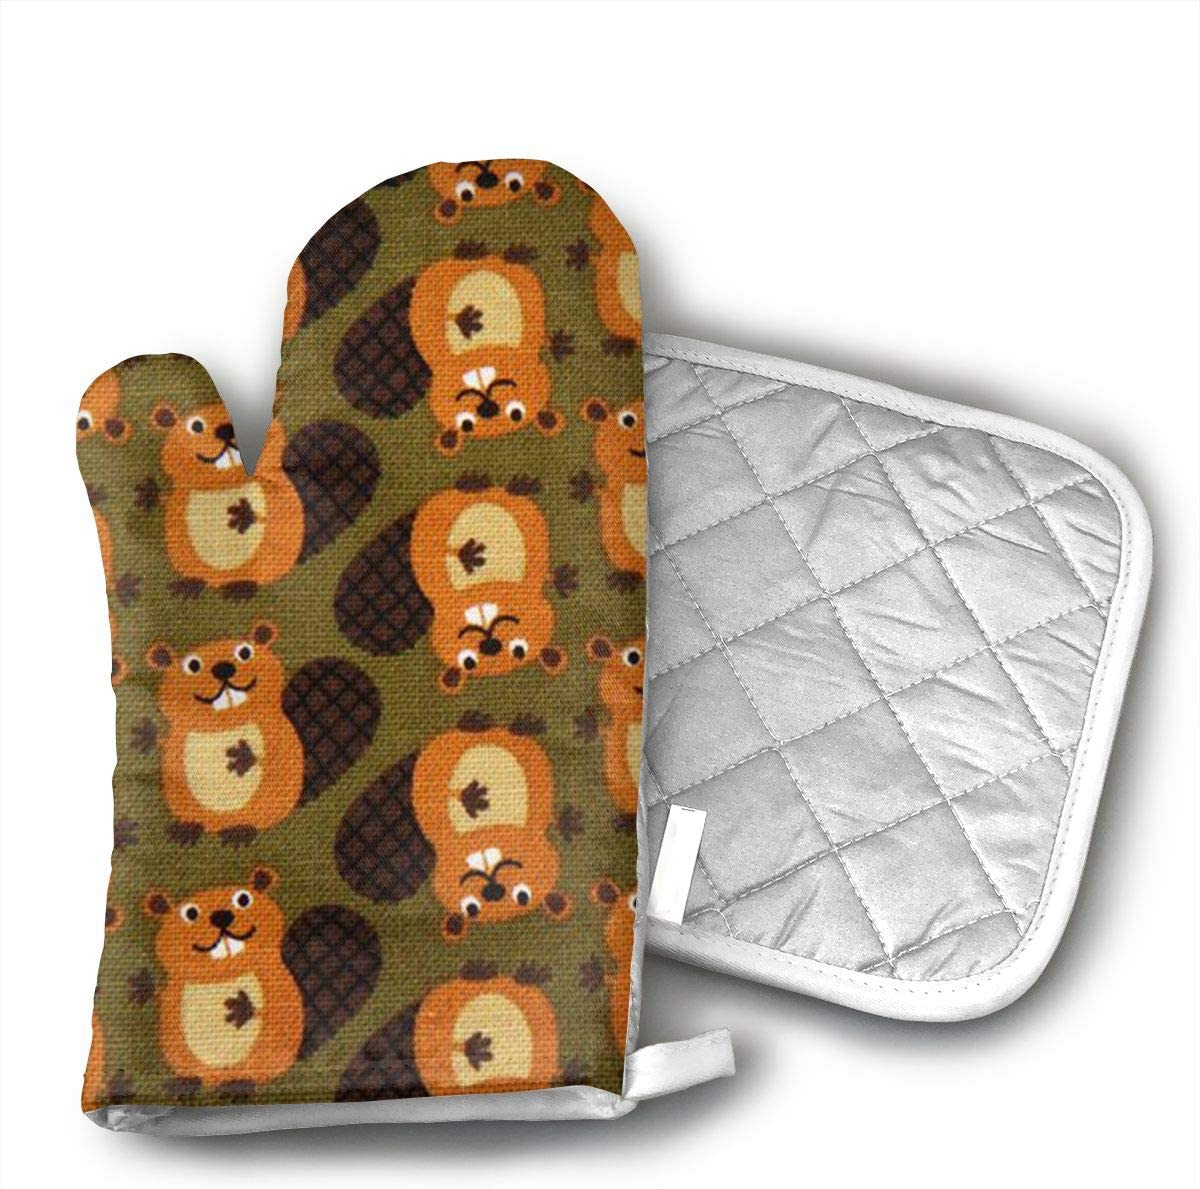 W3Zap6 Beaver Oven Mitts BBQ Oven Gloves Baking Pot Mitts for Kitchen Cooking